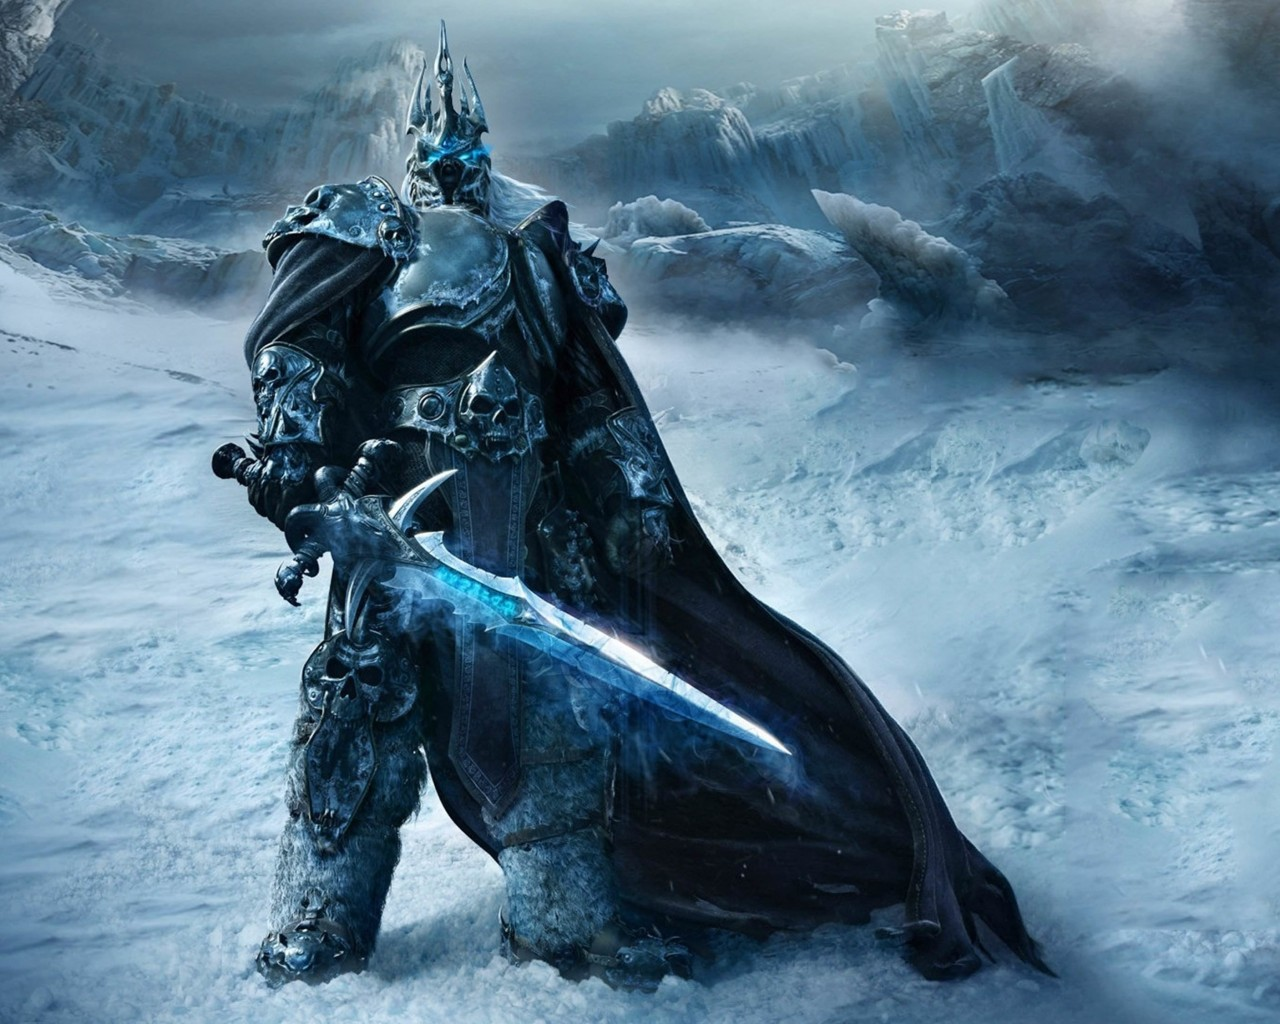 World of Warcraft: Wrath of the Lich King Wallpaper for Desktop 1280x1024